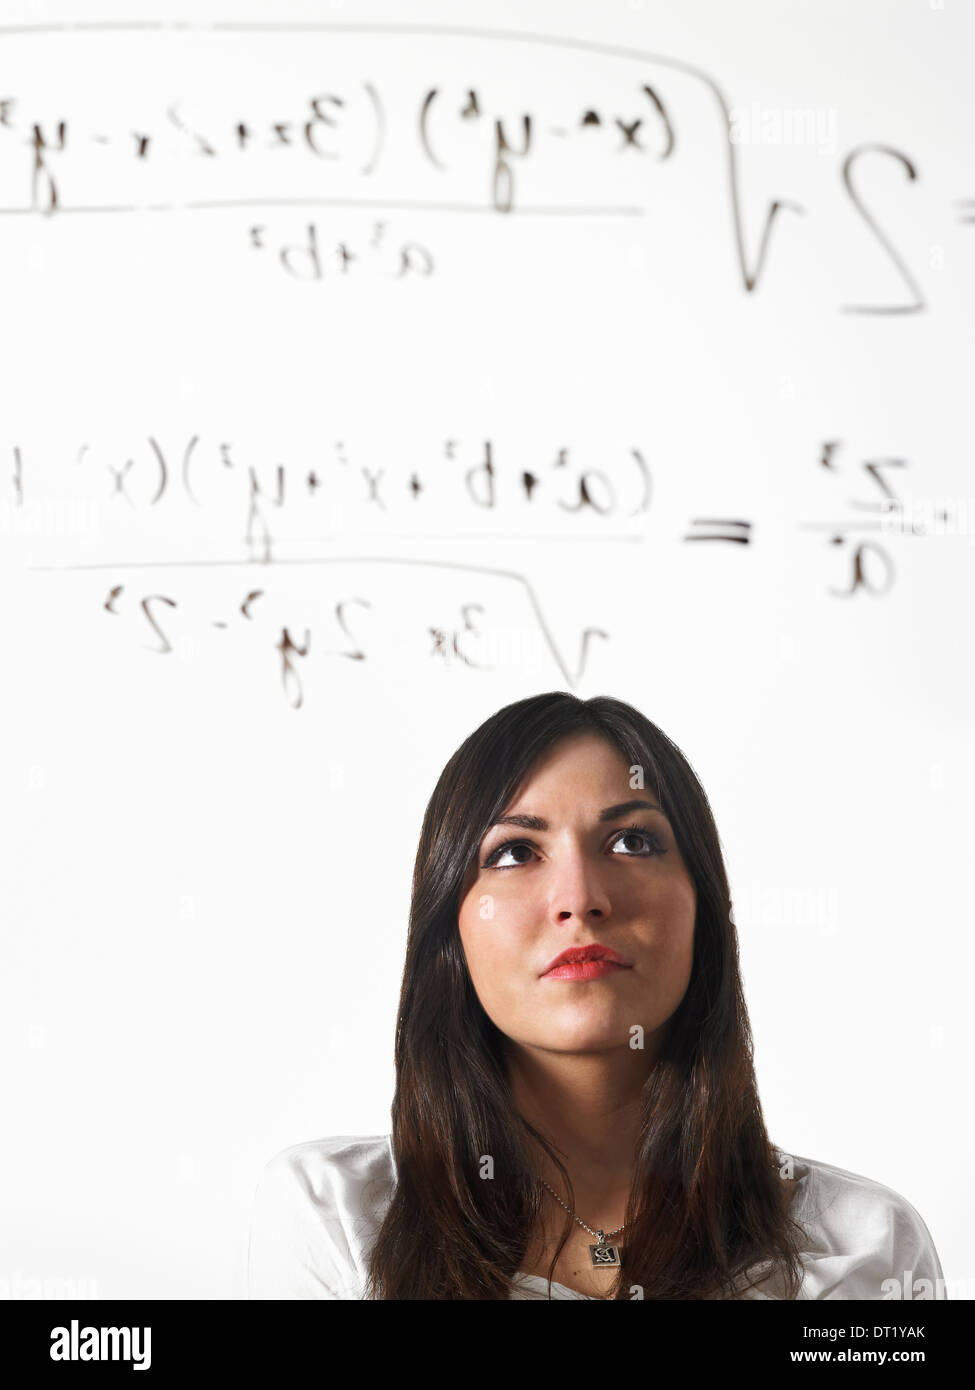 A young woman writing a mathematical equation with black marker on a clear see-through surface and standing back to consider it - Stock Image